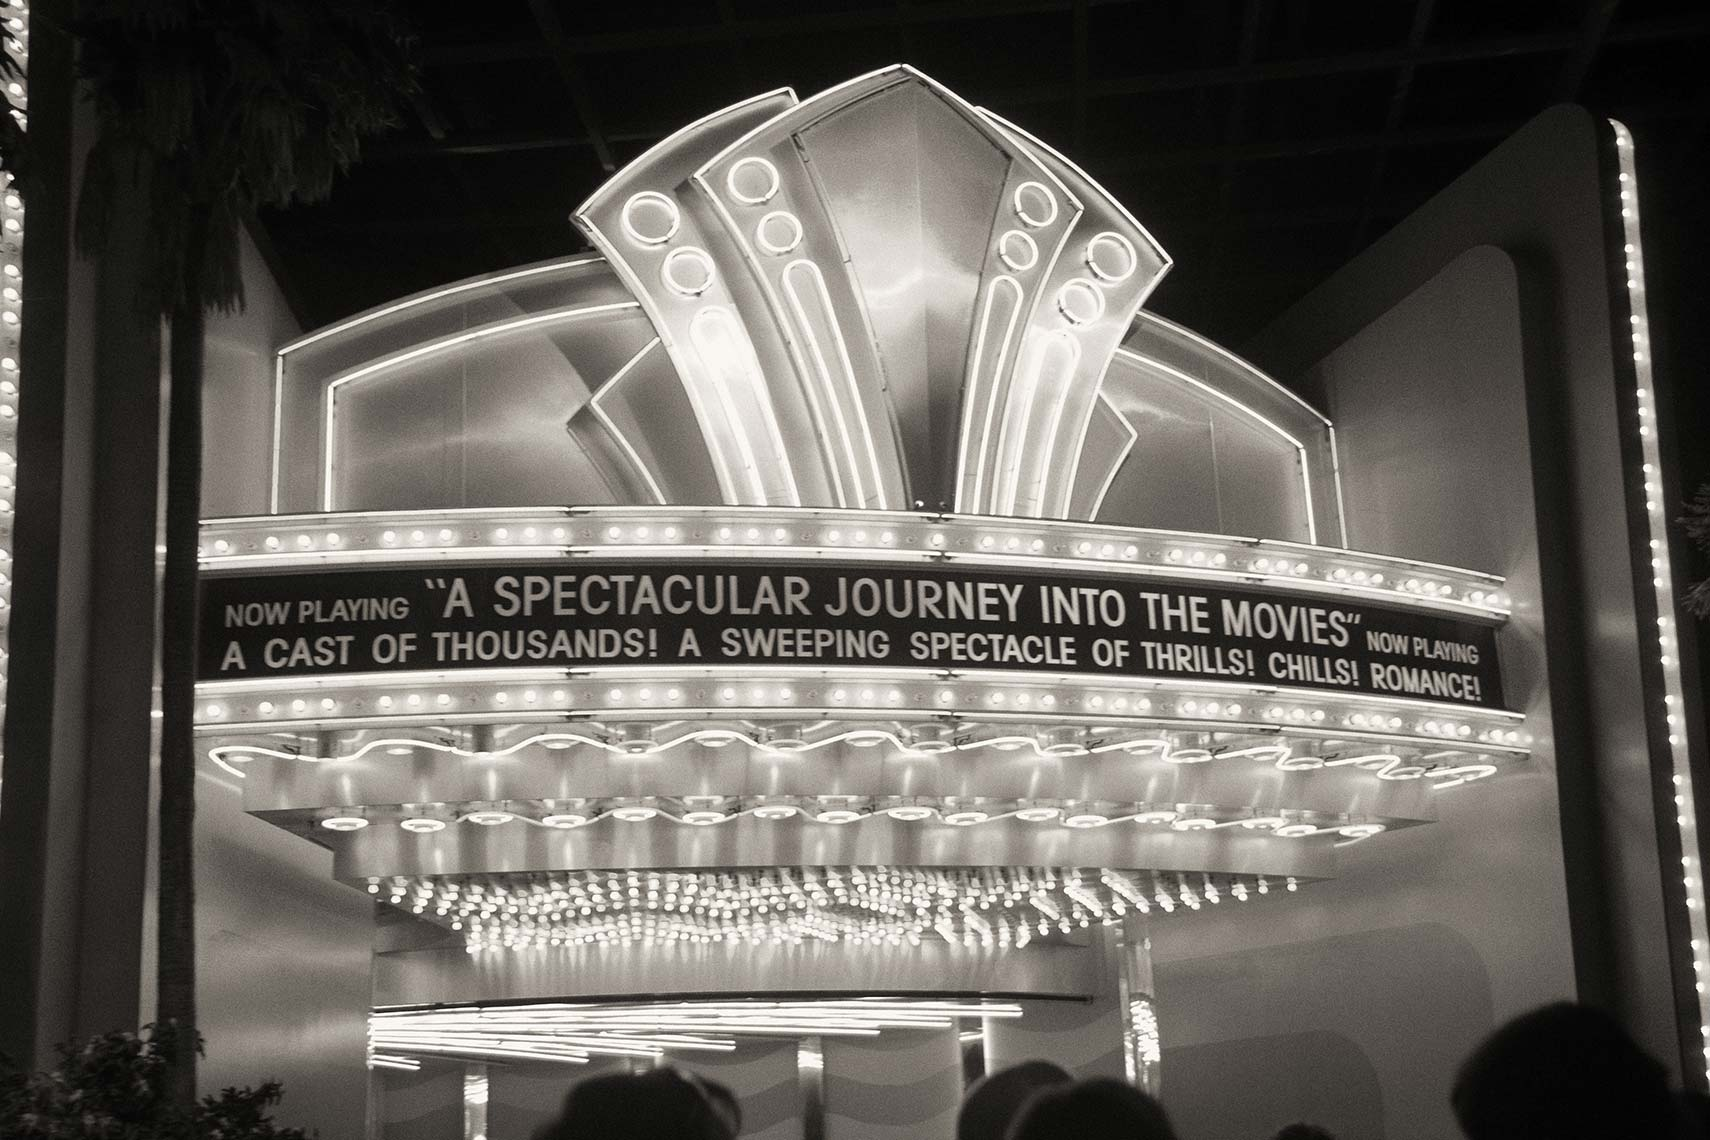 Disney Journey Into the Movies by David Fox Photographer